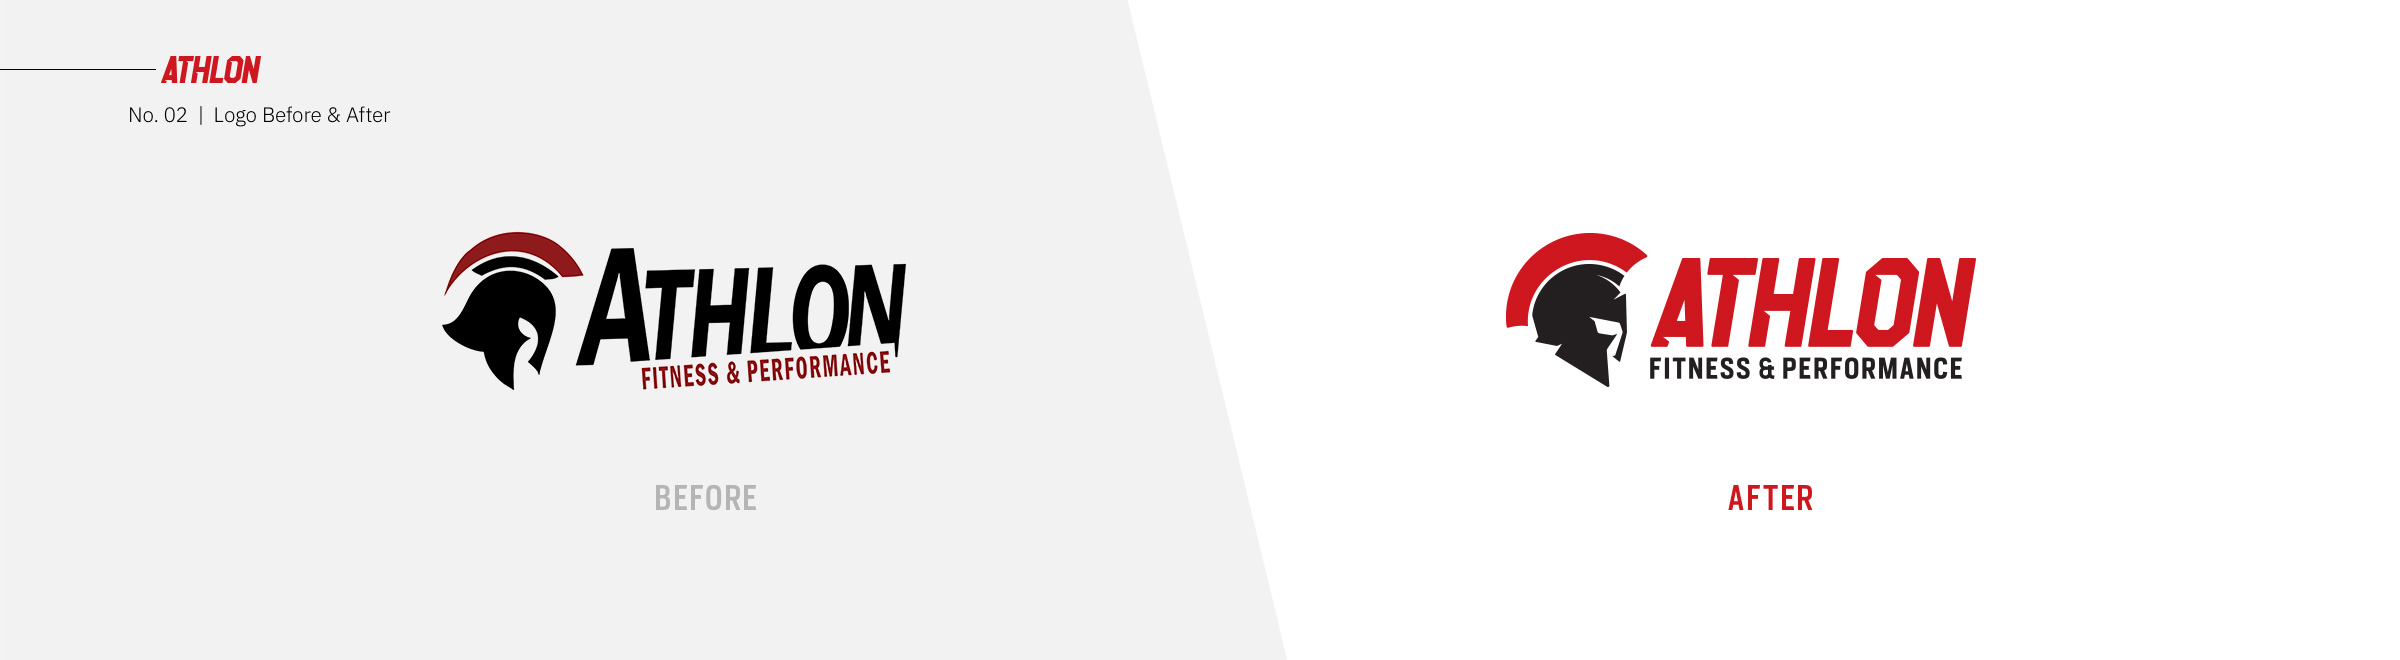 Athlon-Brand-Refresh-02-Logo-Before-and-After